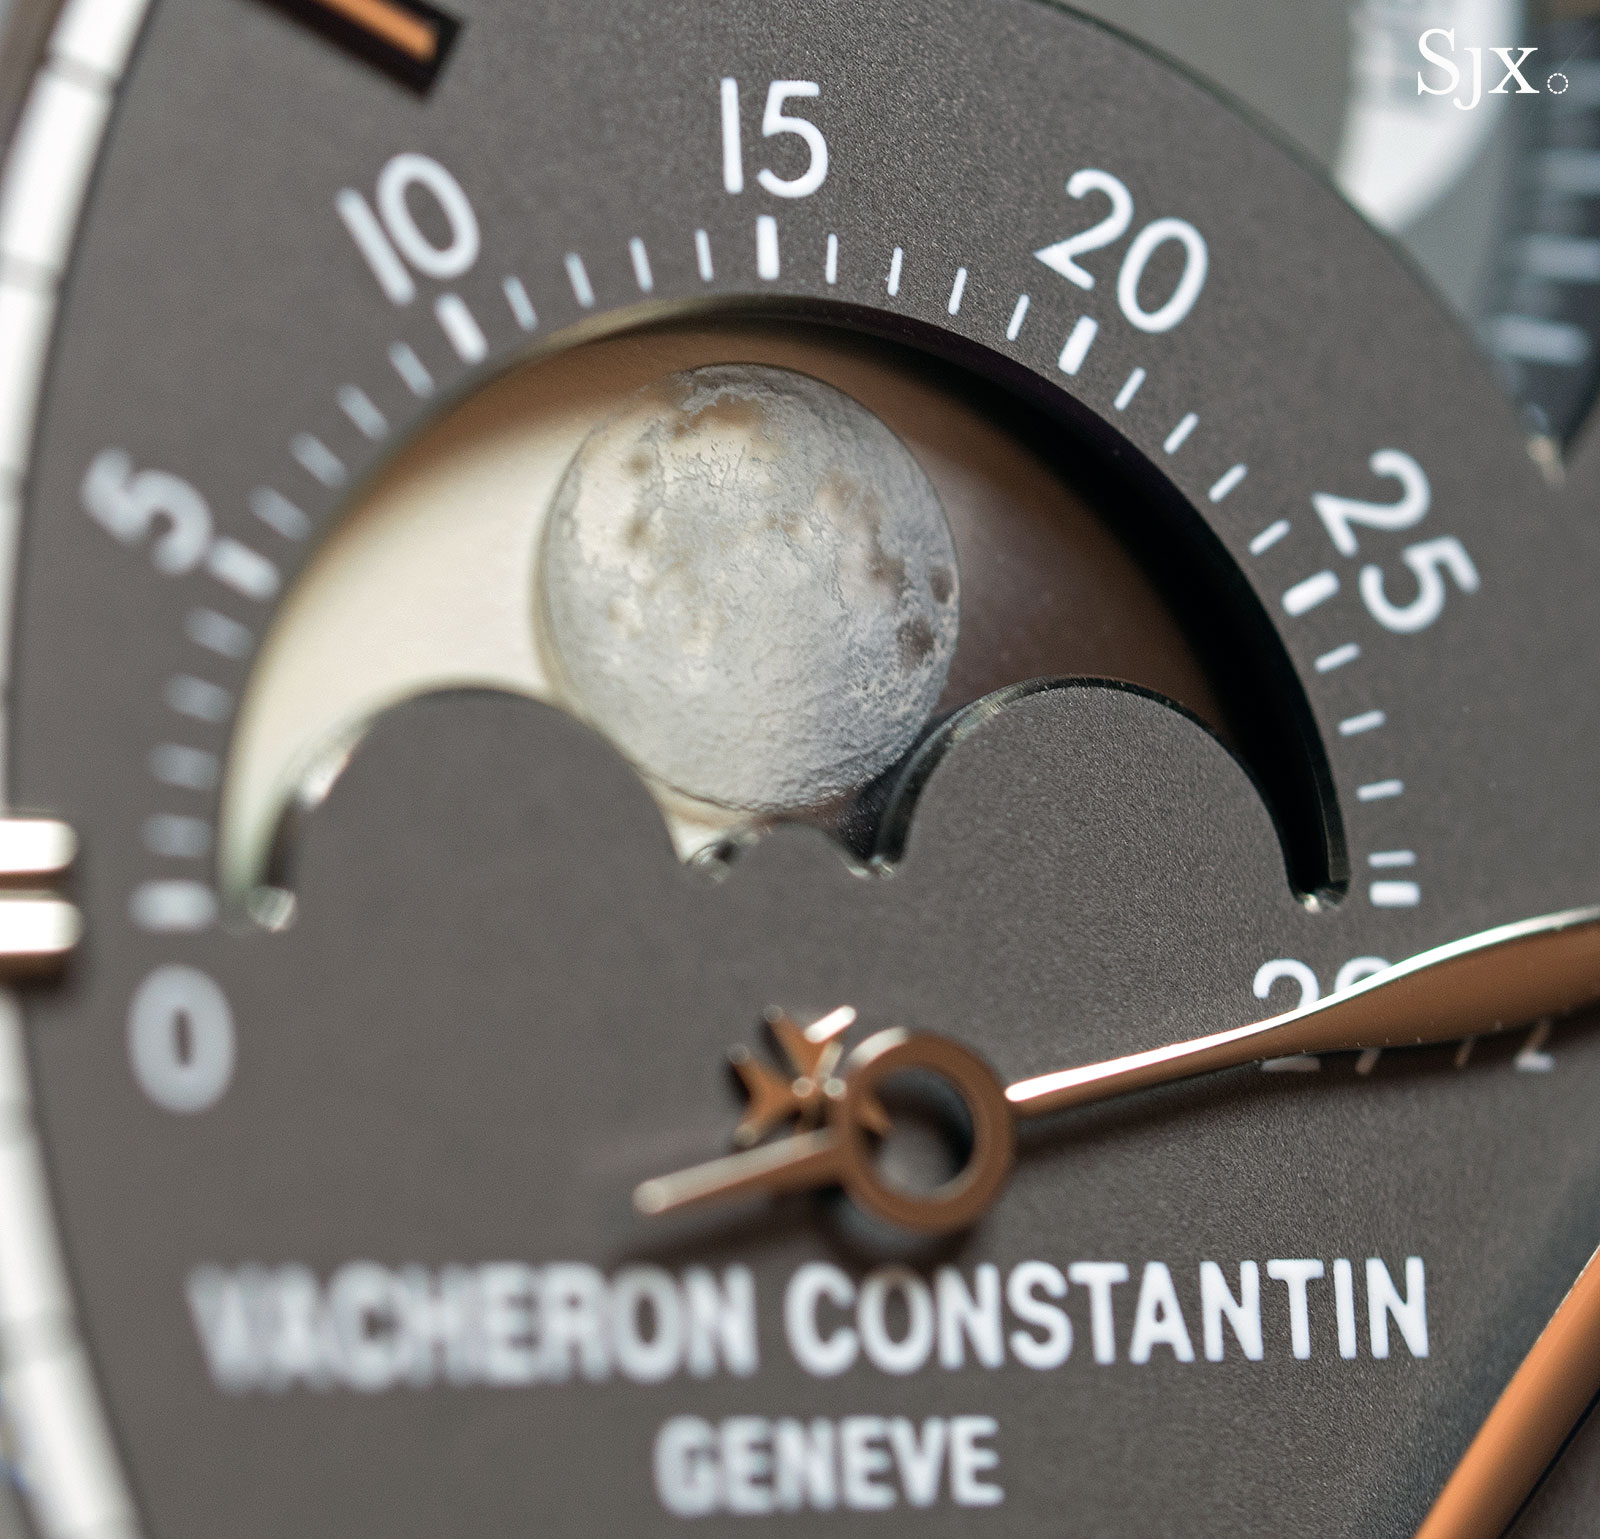 Vacheron Constantin Celestia Astronomical Grand Complication 11